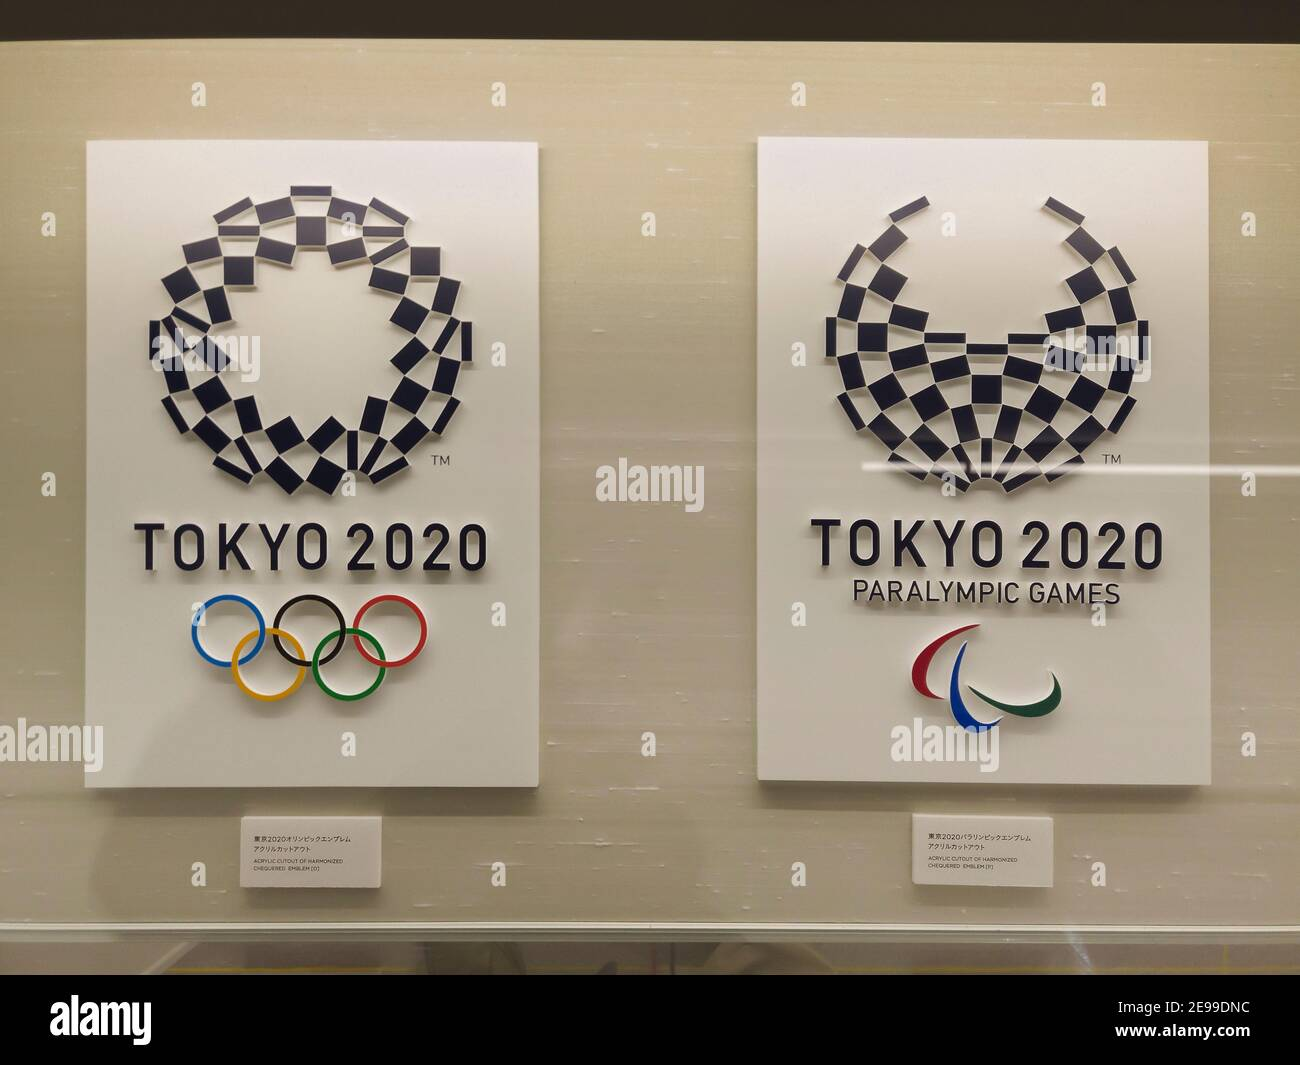 Tokyo Olympics Logo High Resolution Stock Photography And Images Alamy